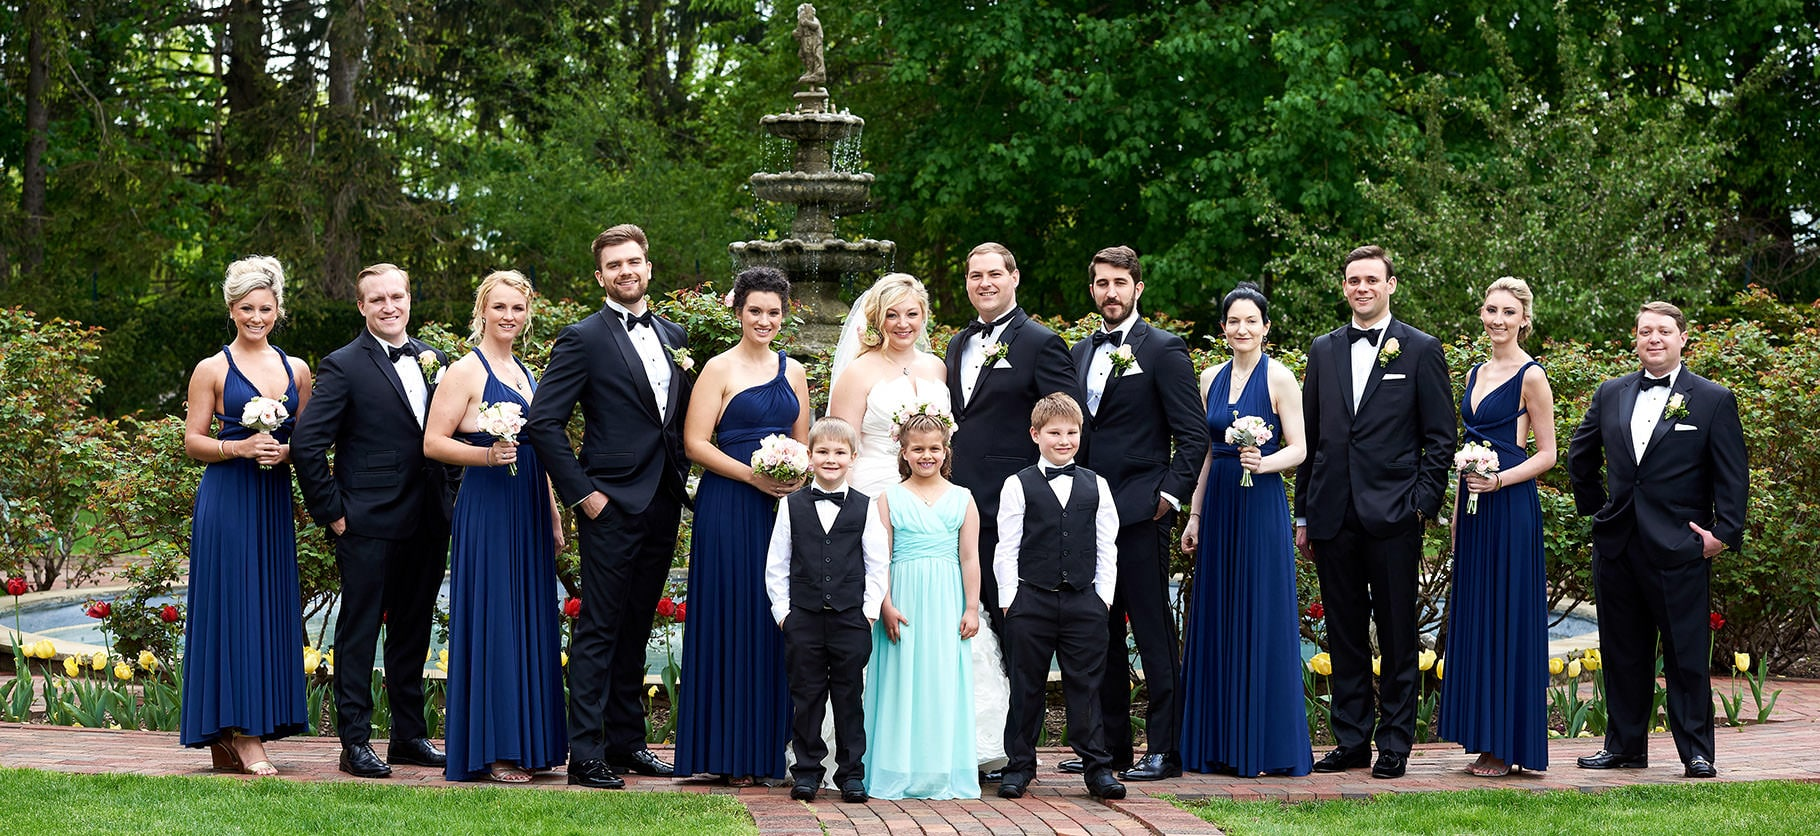 wedding party photo the manor nj